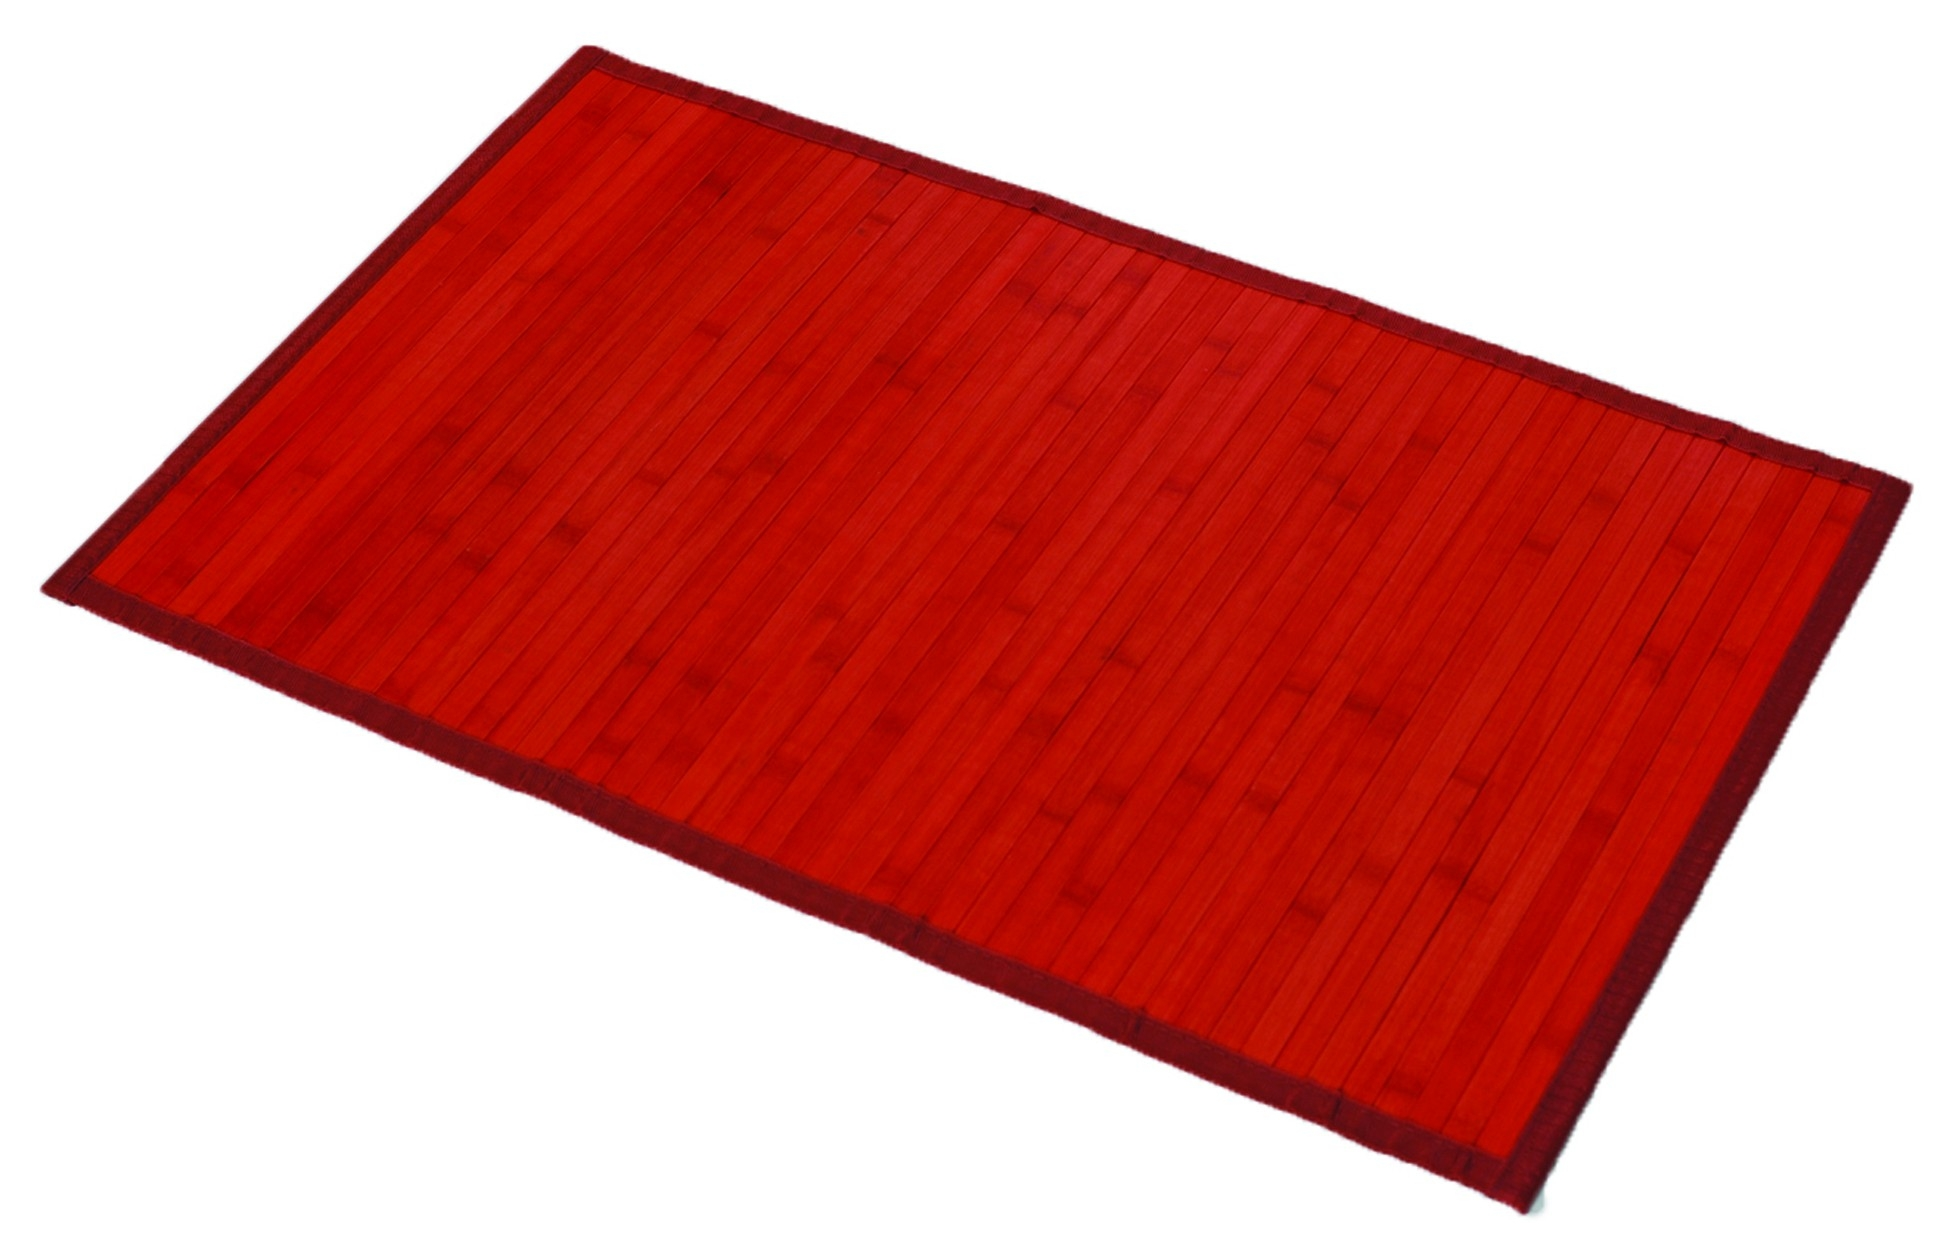 Are Wooden Bath Mats Slippery